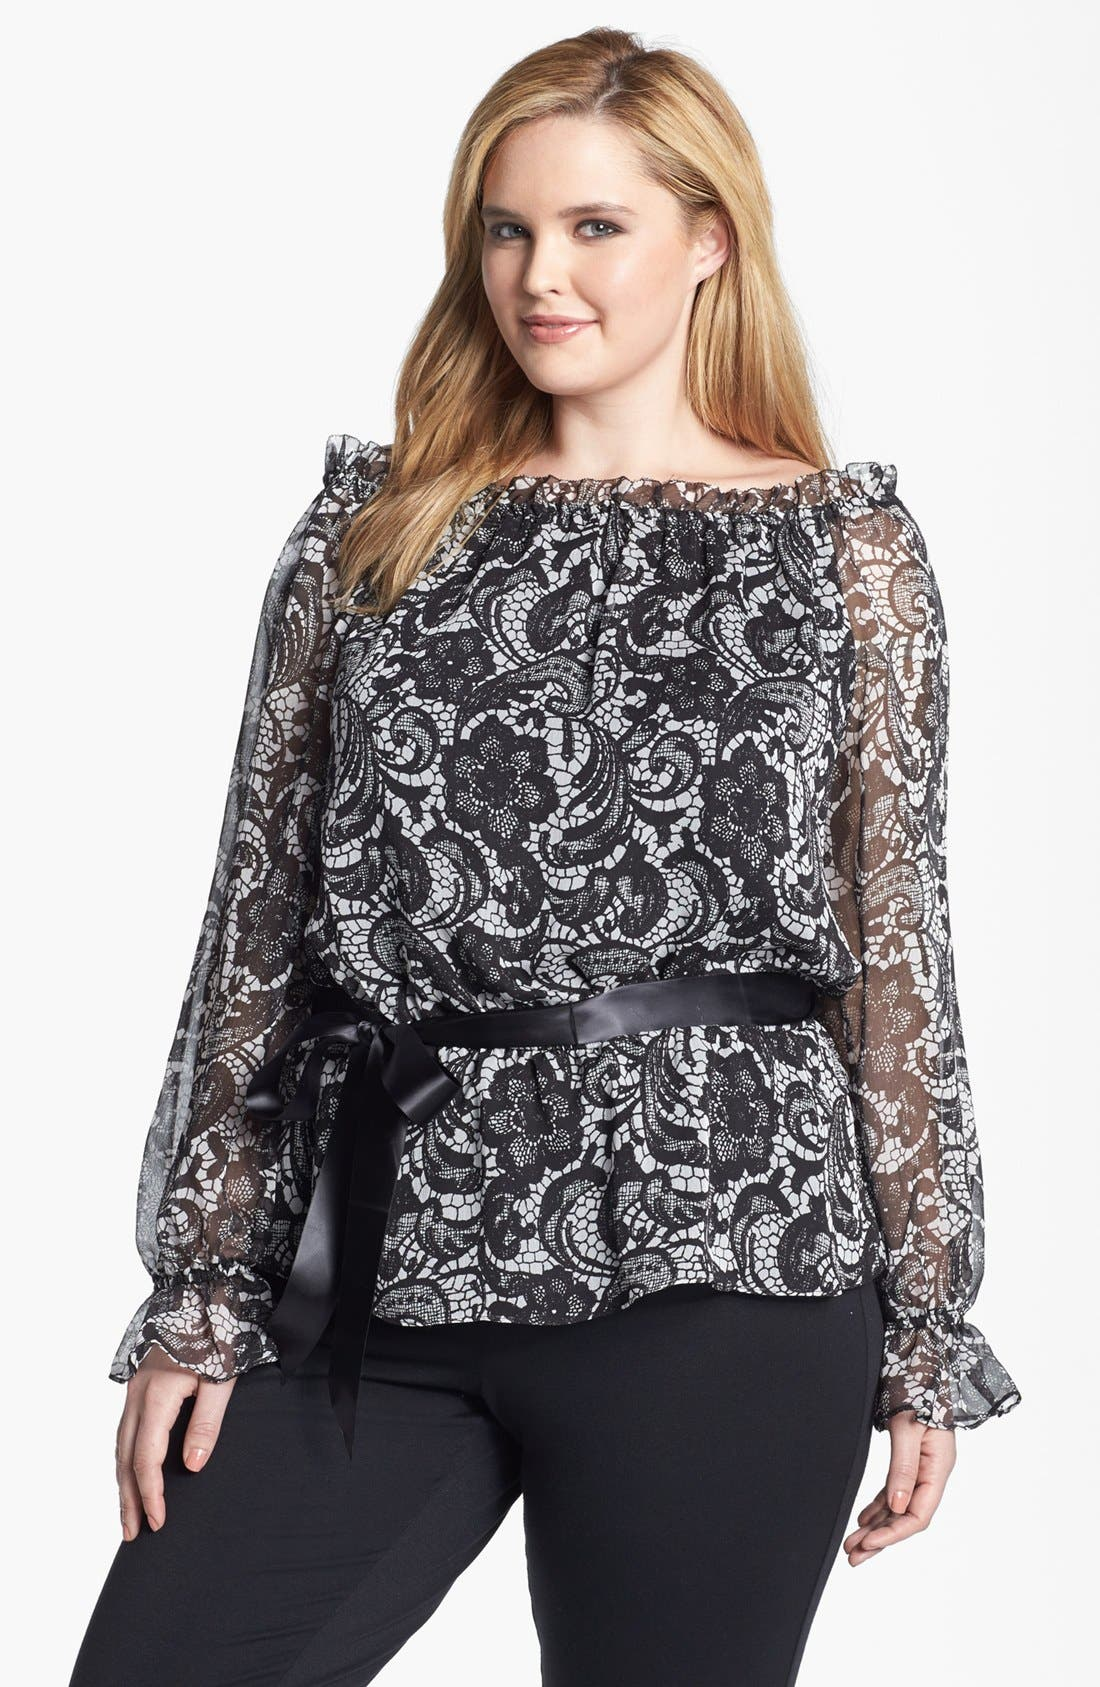 Alternate Image 1 Selected - Adrianna Papell Lace Print Blouse (Plus Size)